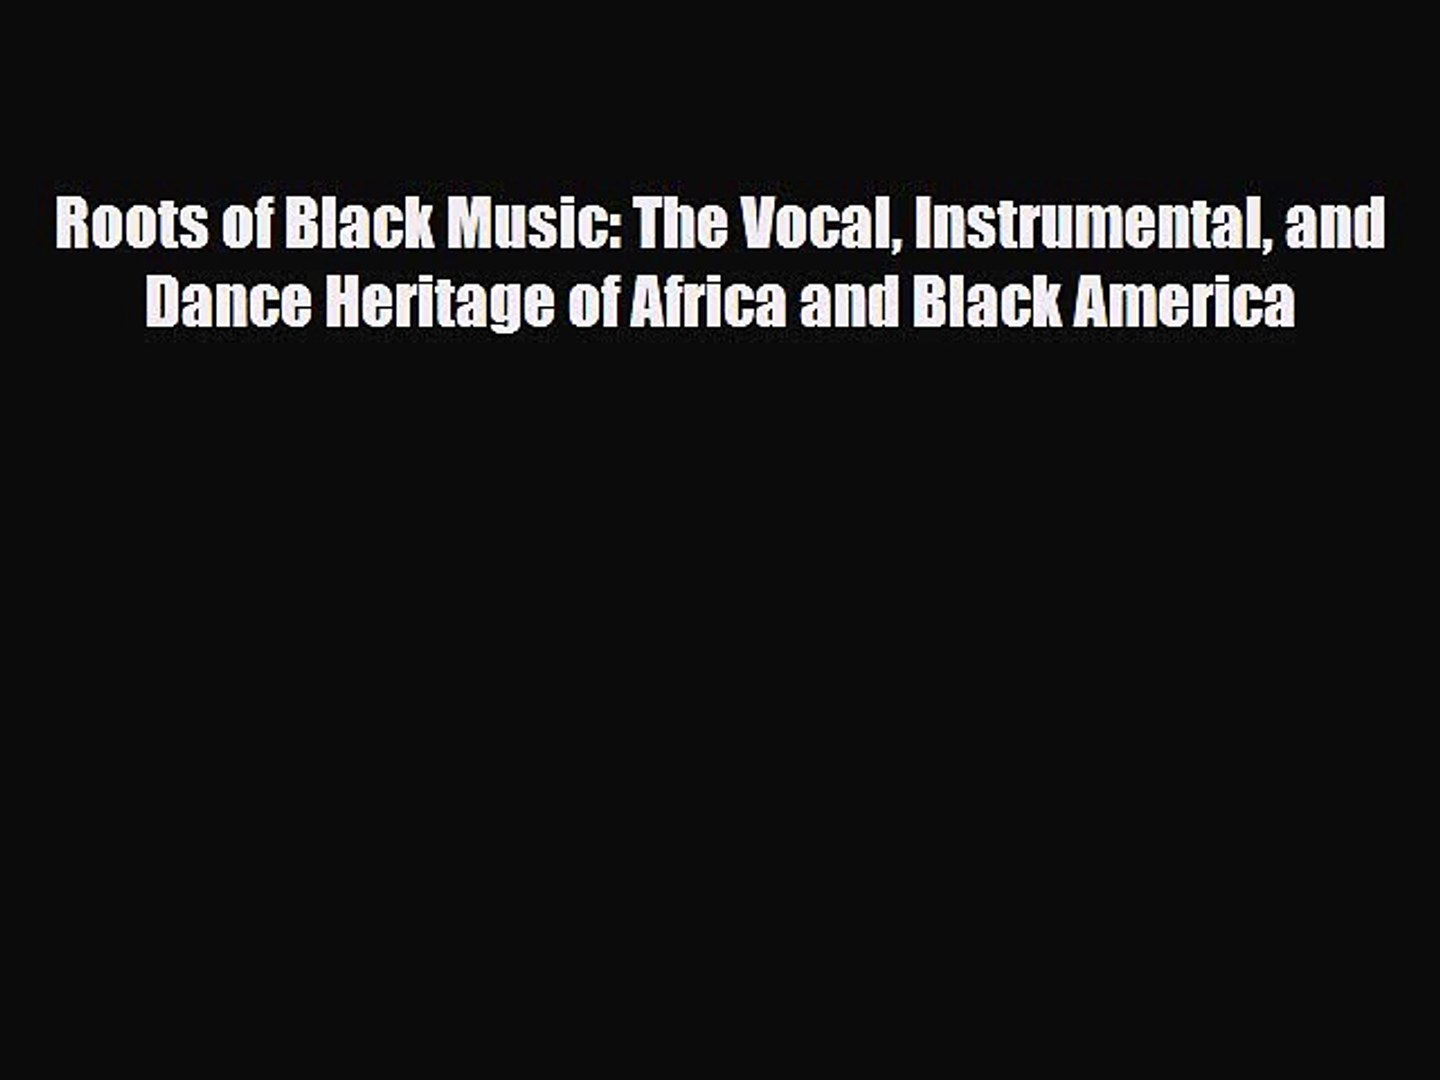 PDF Download Roots of Black Music: The Vocal Instrumental and Dance Heritage of Africa and